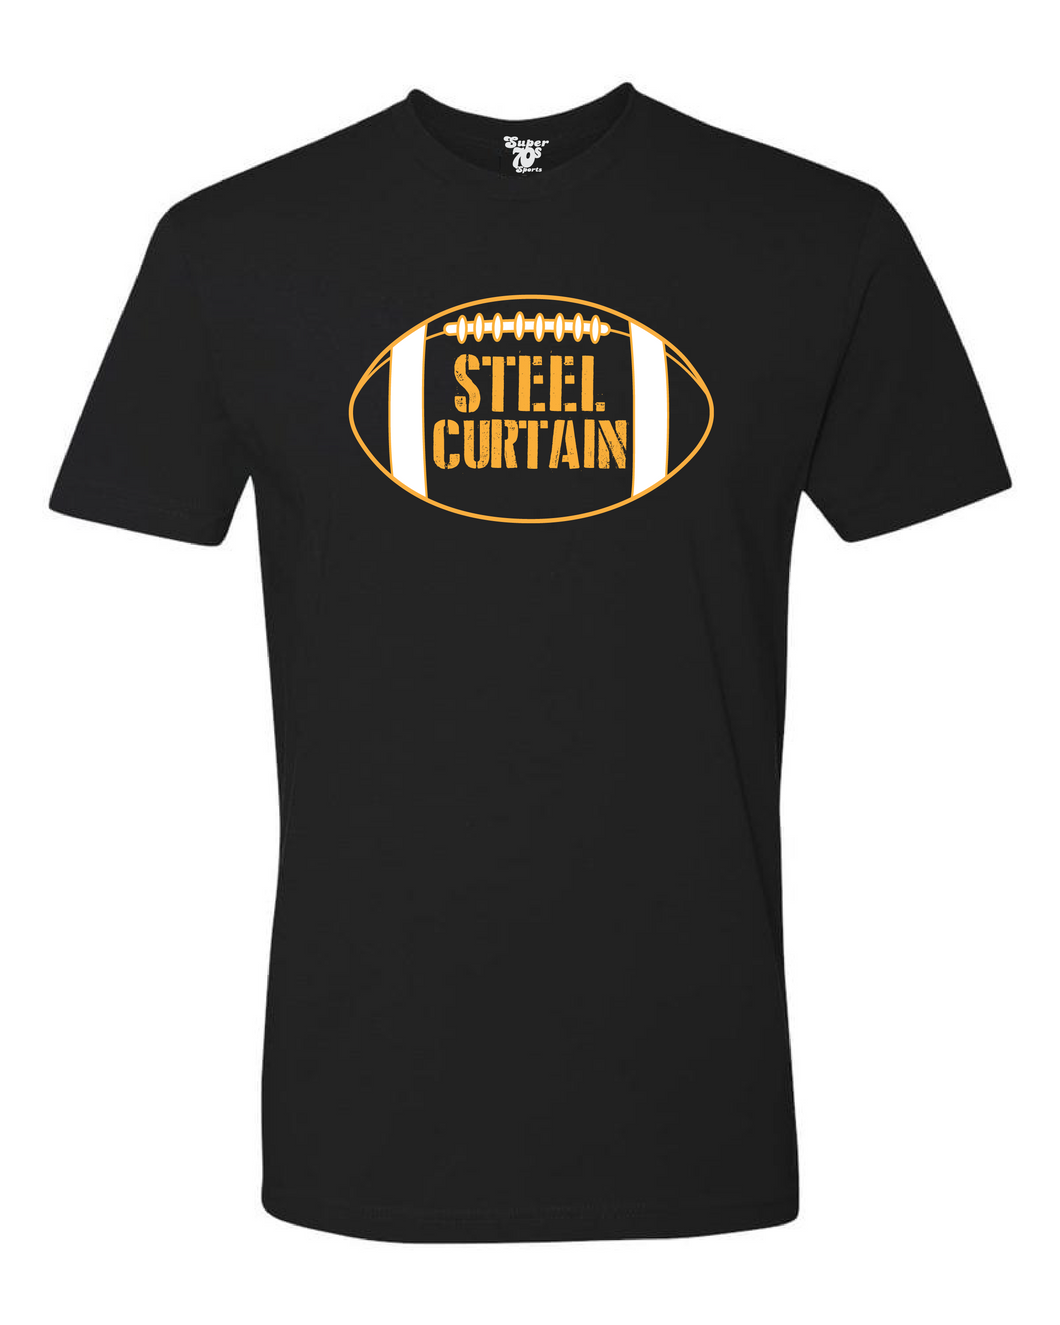 Steel Curtain Tee